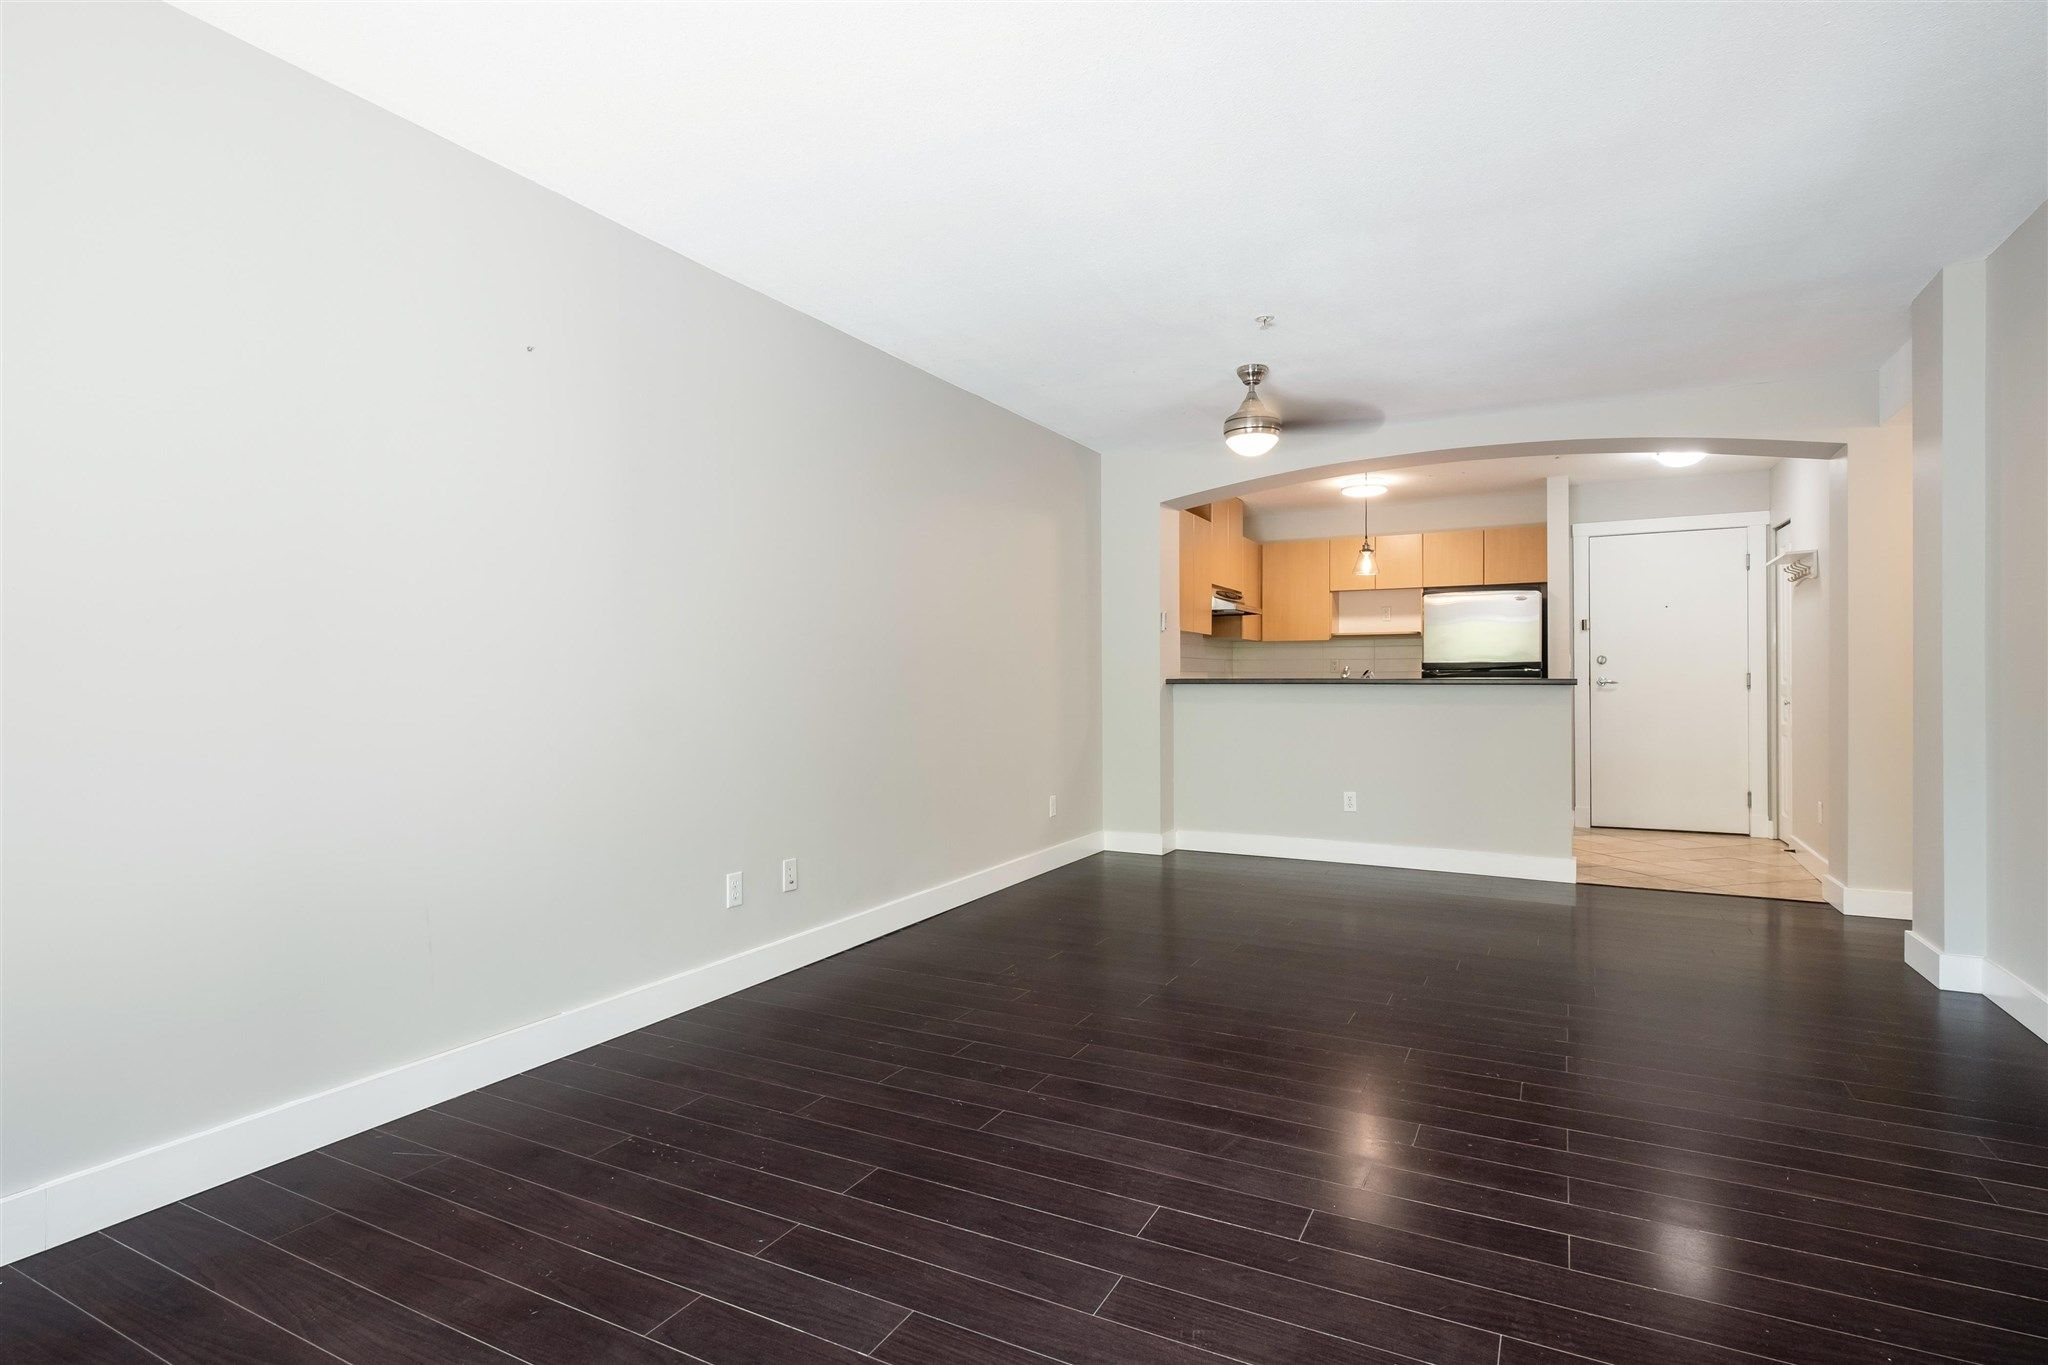 """Photo 6: Photos: 211 9339 UNIVERSITY Crescent in Burnaby: Simon Fraser Univer. Condo for sale in """"HARMONY"""" (Burnaby North)  : MLS®# R2597666"""